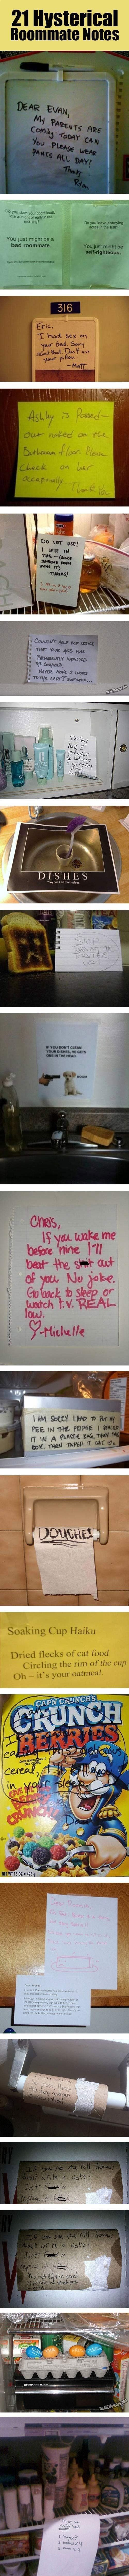 21 Hysterical Roommate Notes